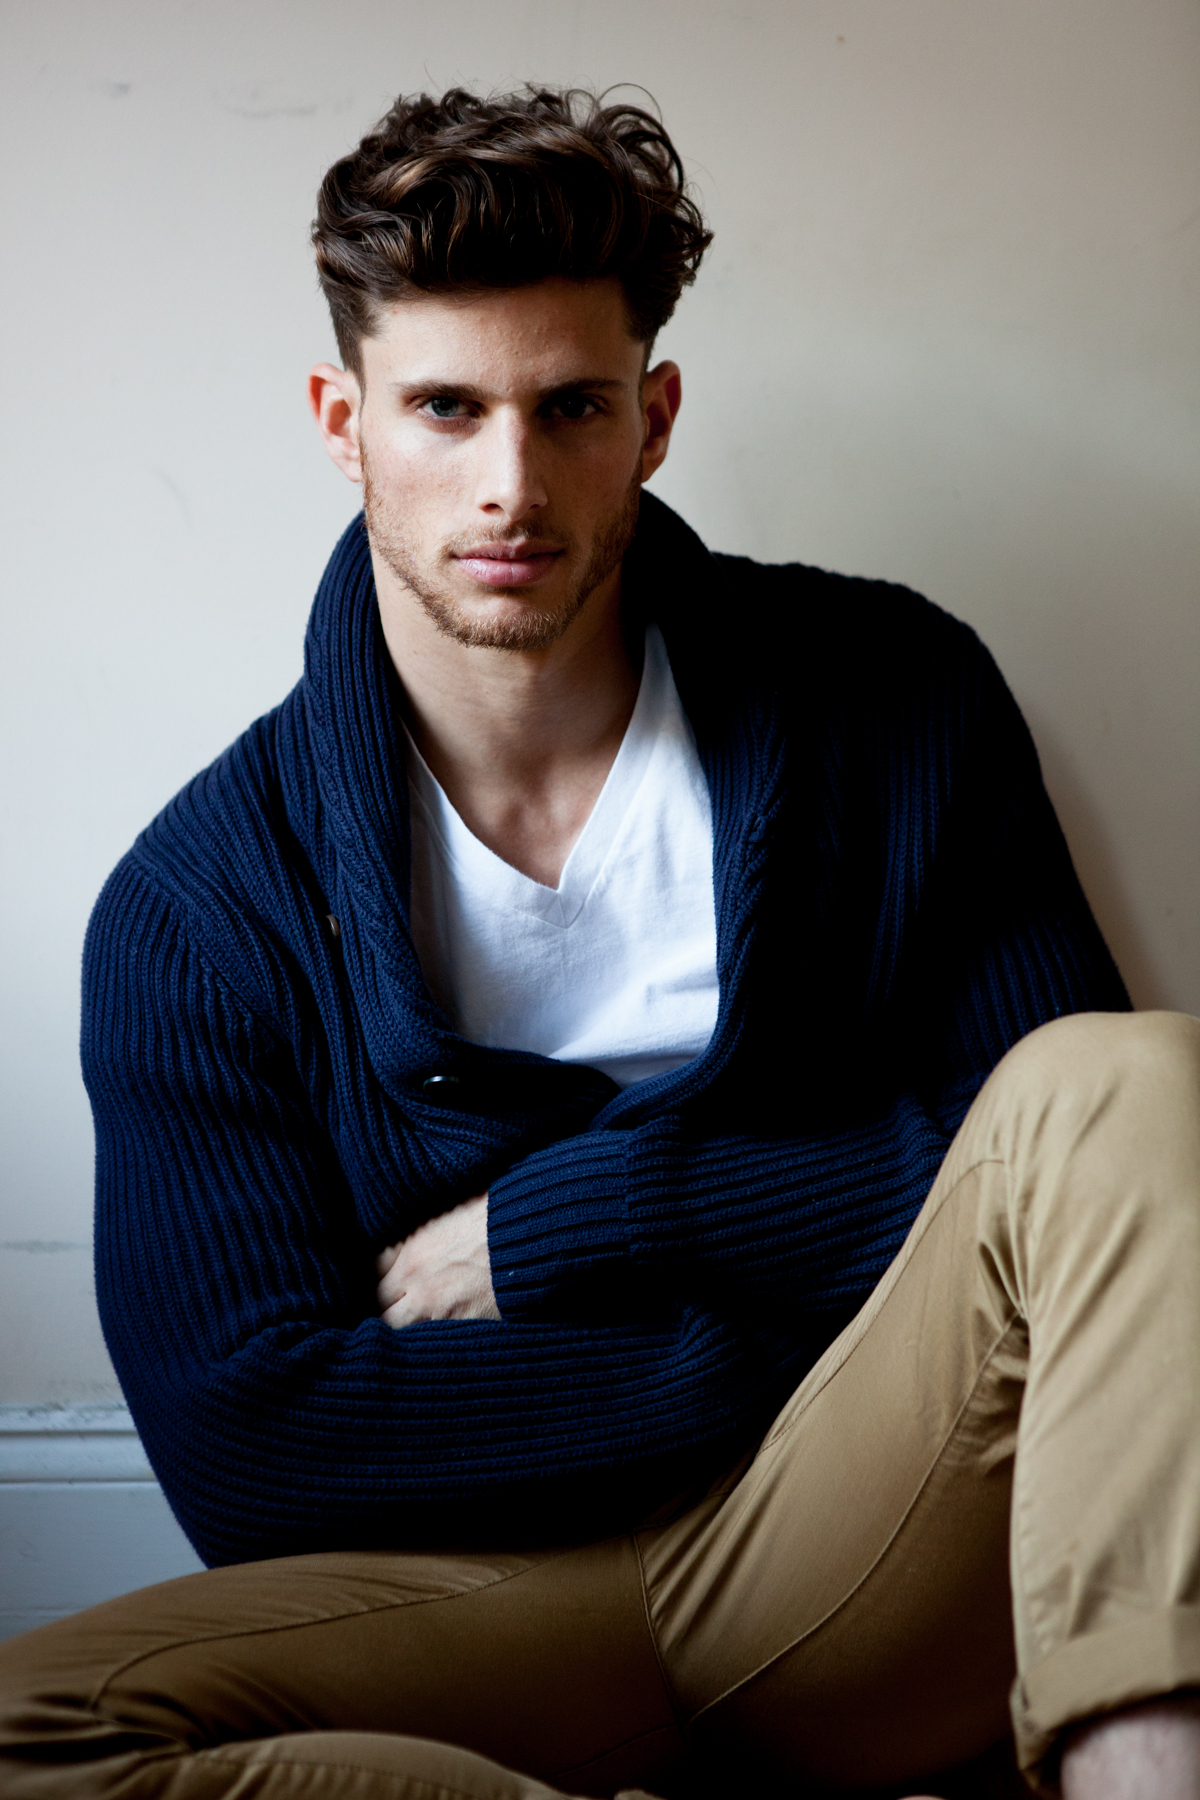 Barrett wears Blue Cotton Button Up Gap Sweater, White Hanes V-Neck T-Shirt, Zara Khakis